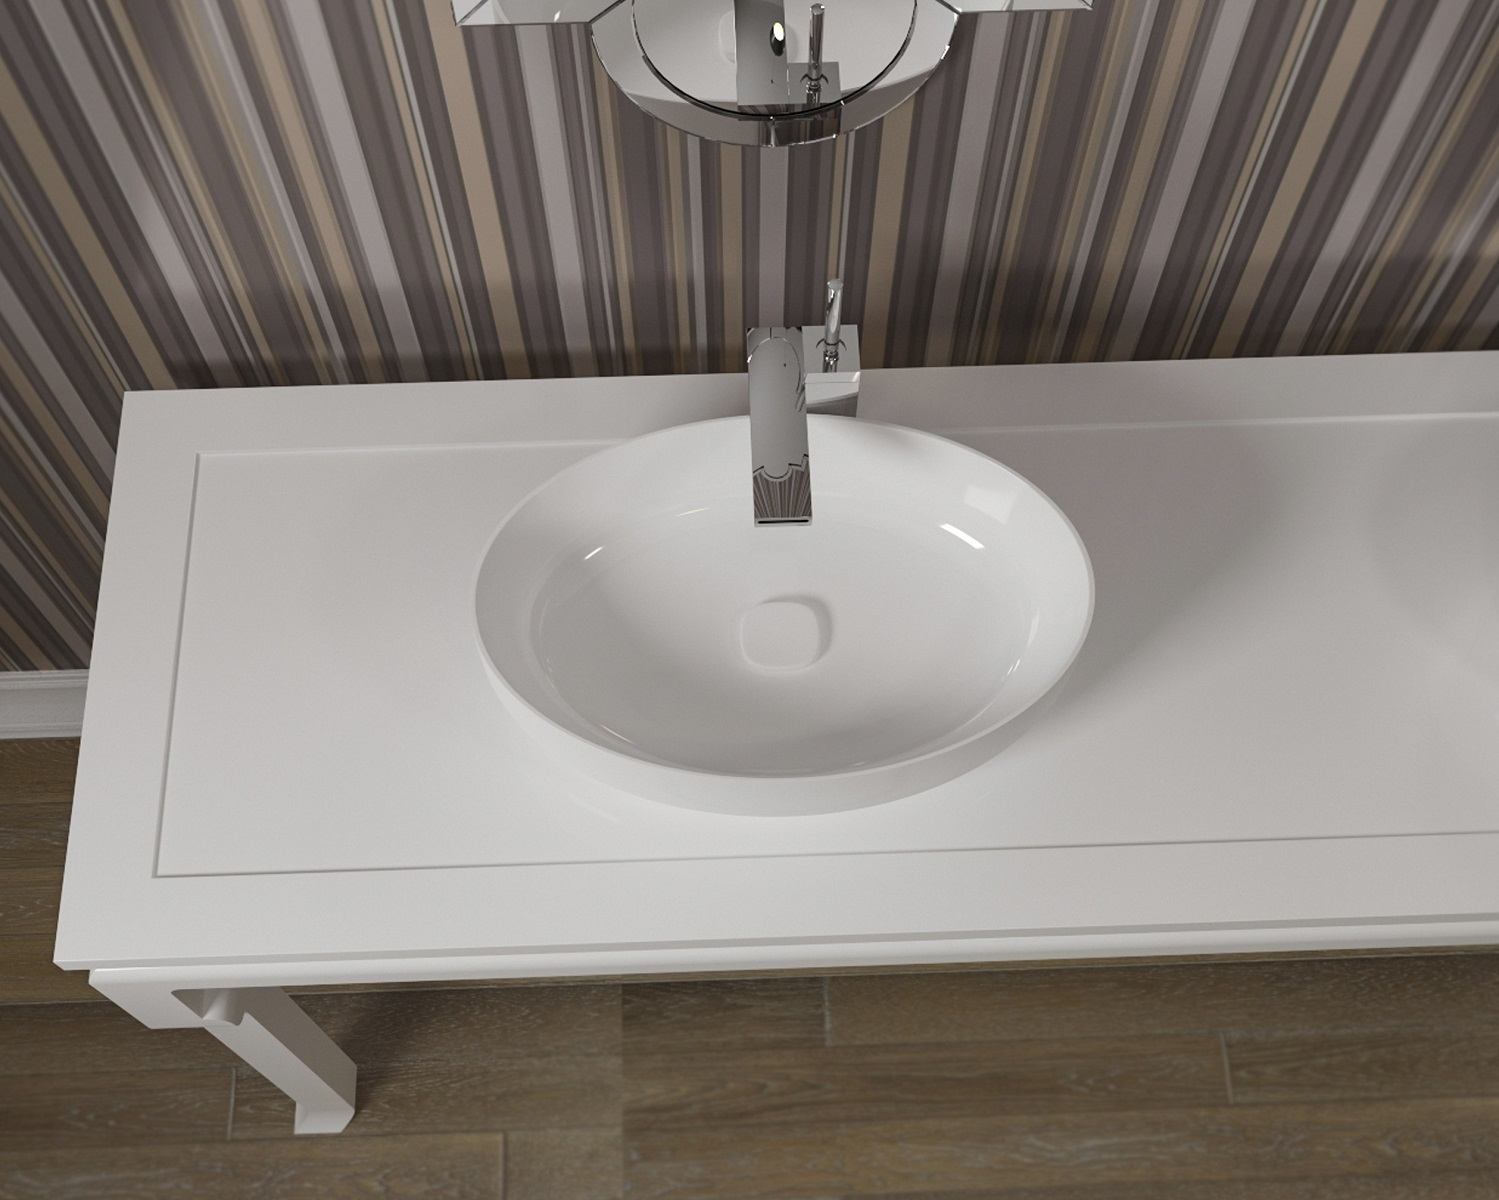 Metamorfosi-wht Oval Ceramic Bathroom Vessel Sink